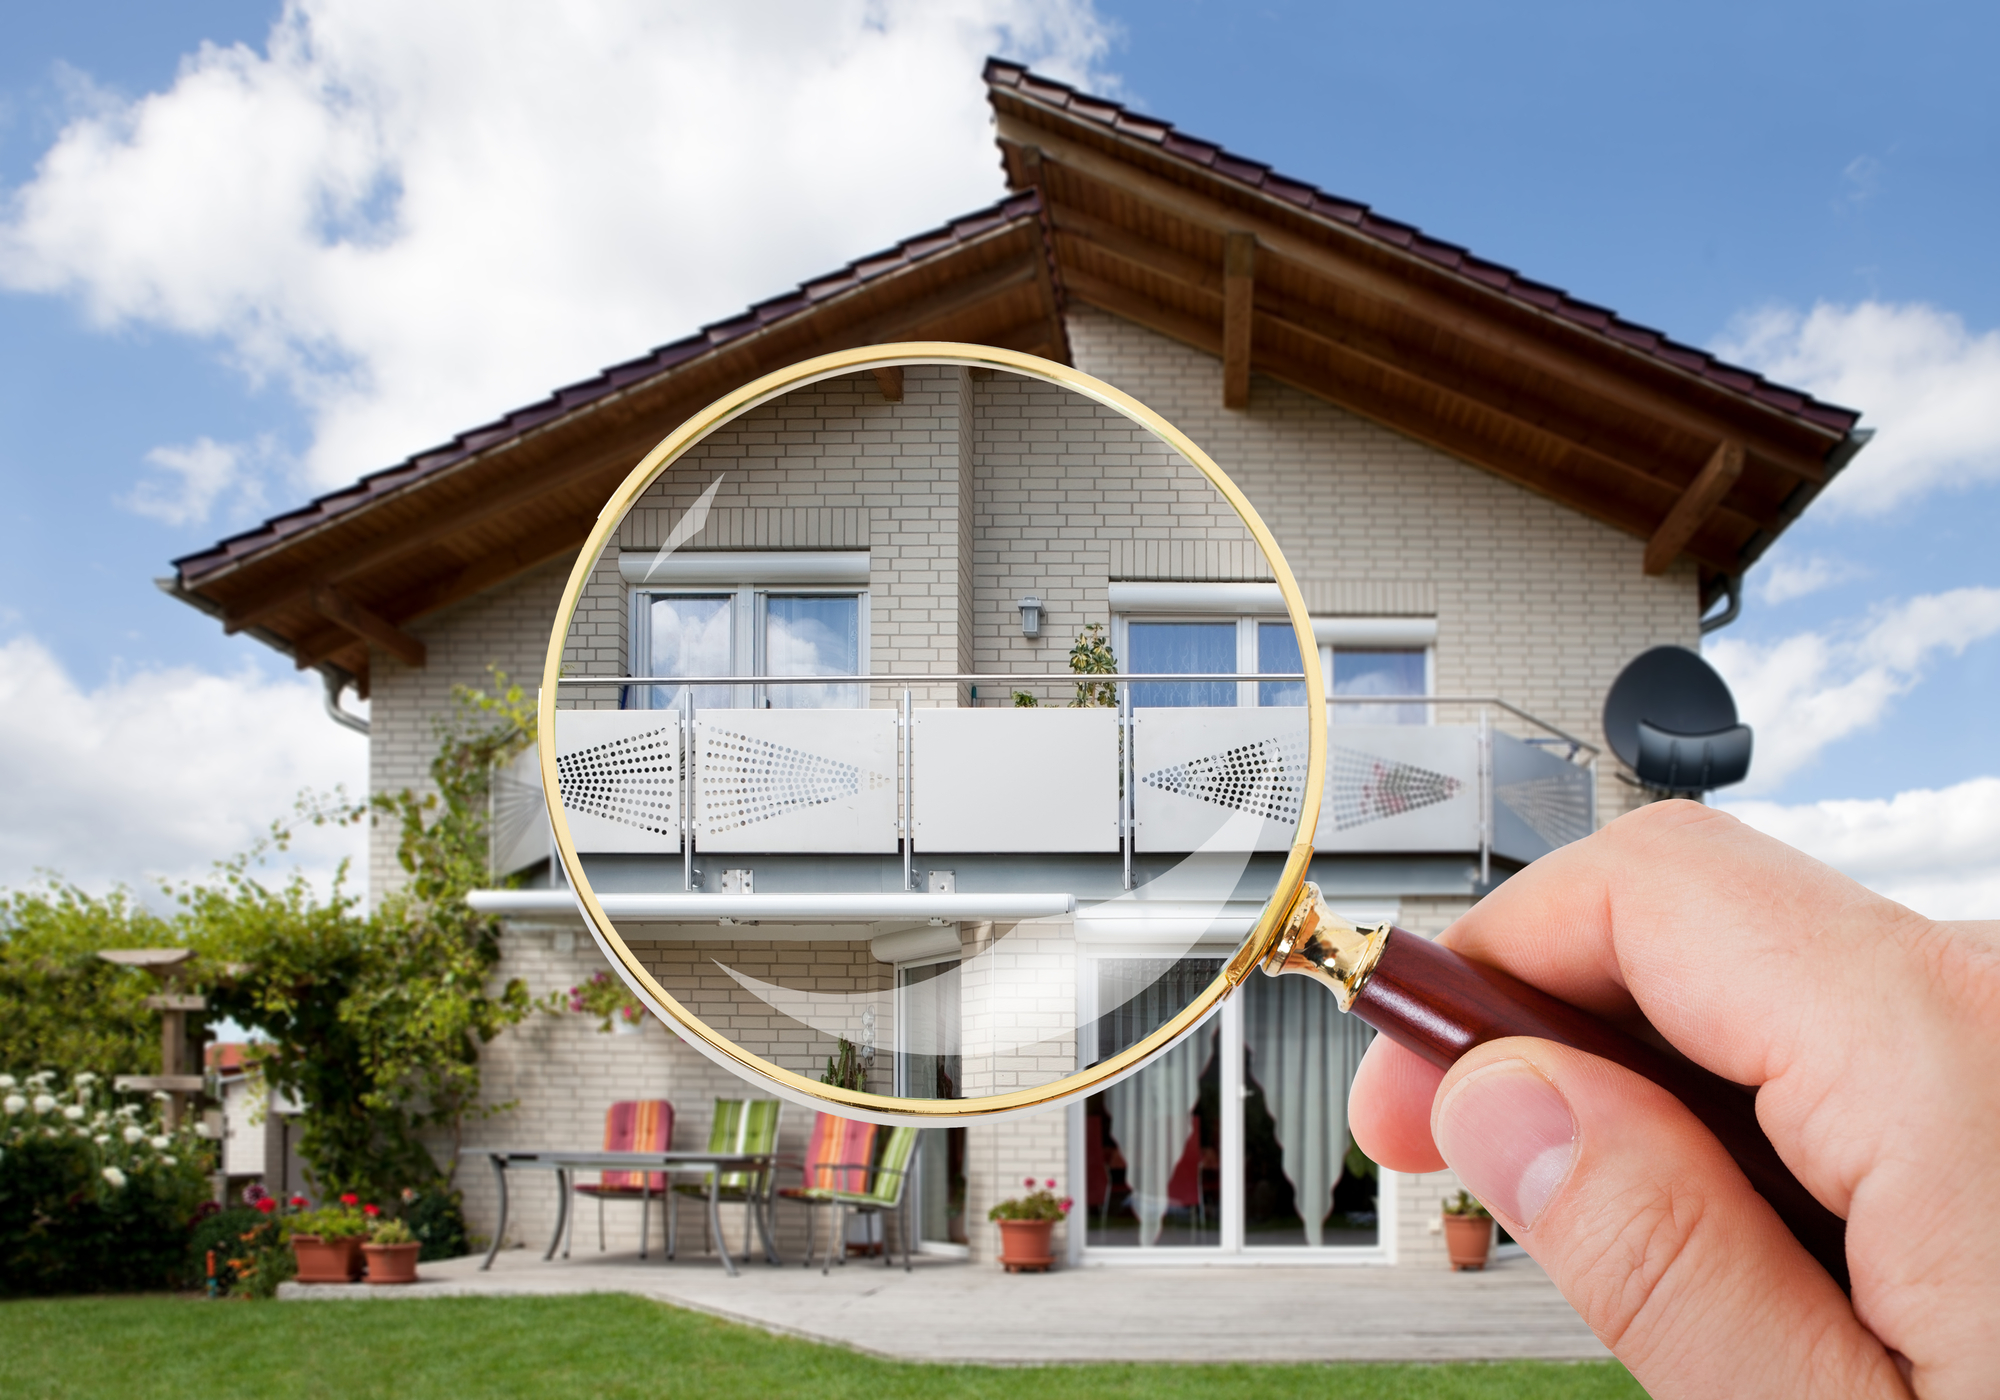 Pest Inspections Person Hand With Magnifying Glass Over Luxury House